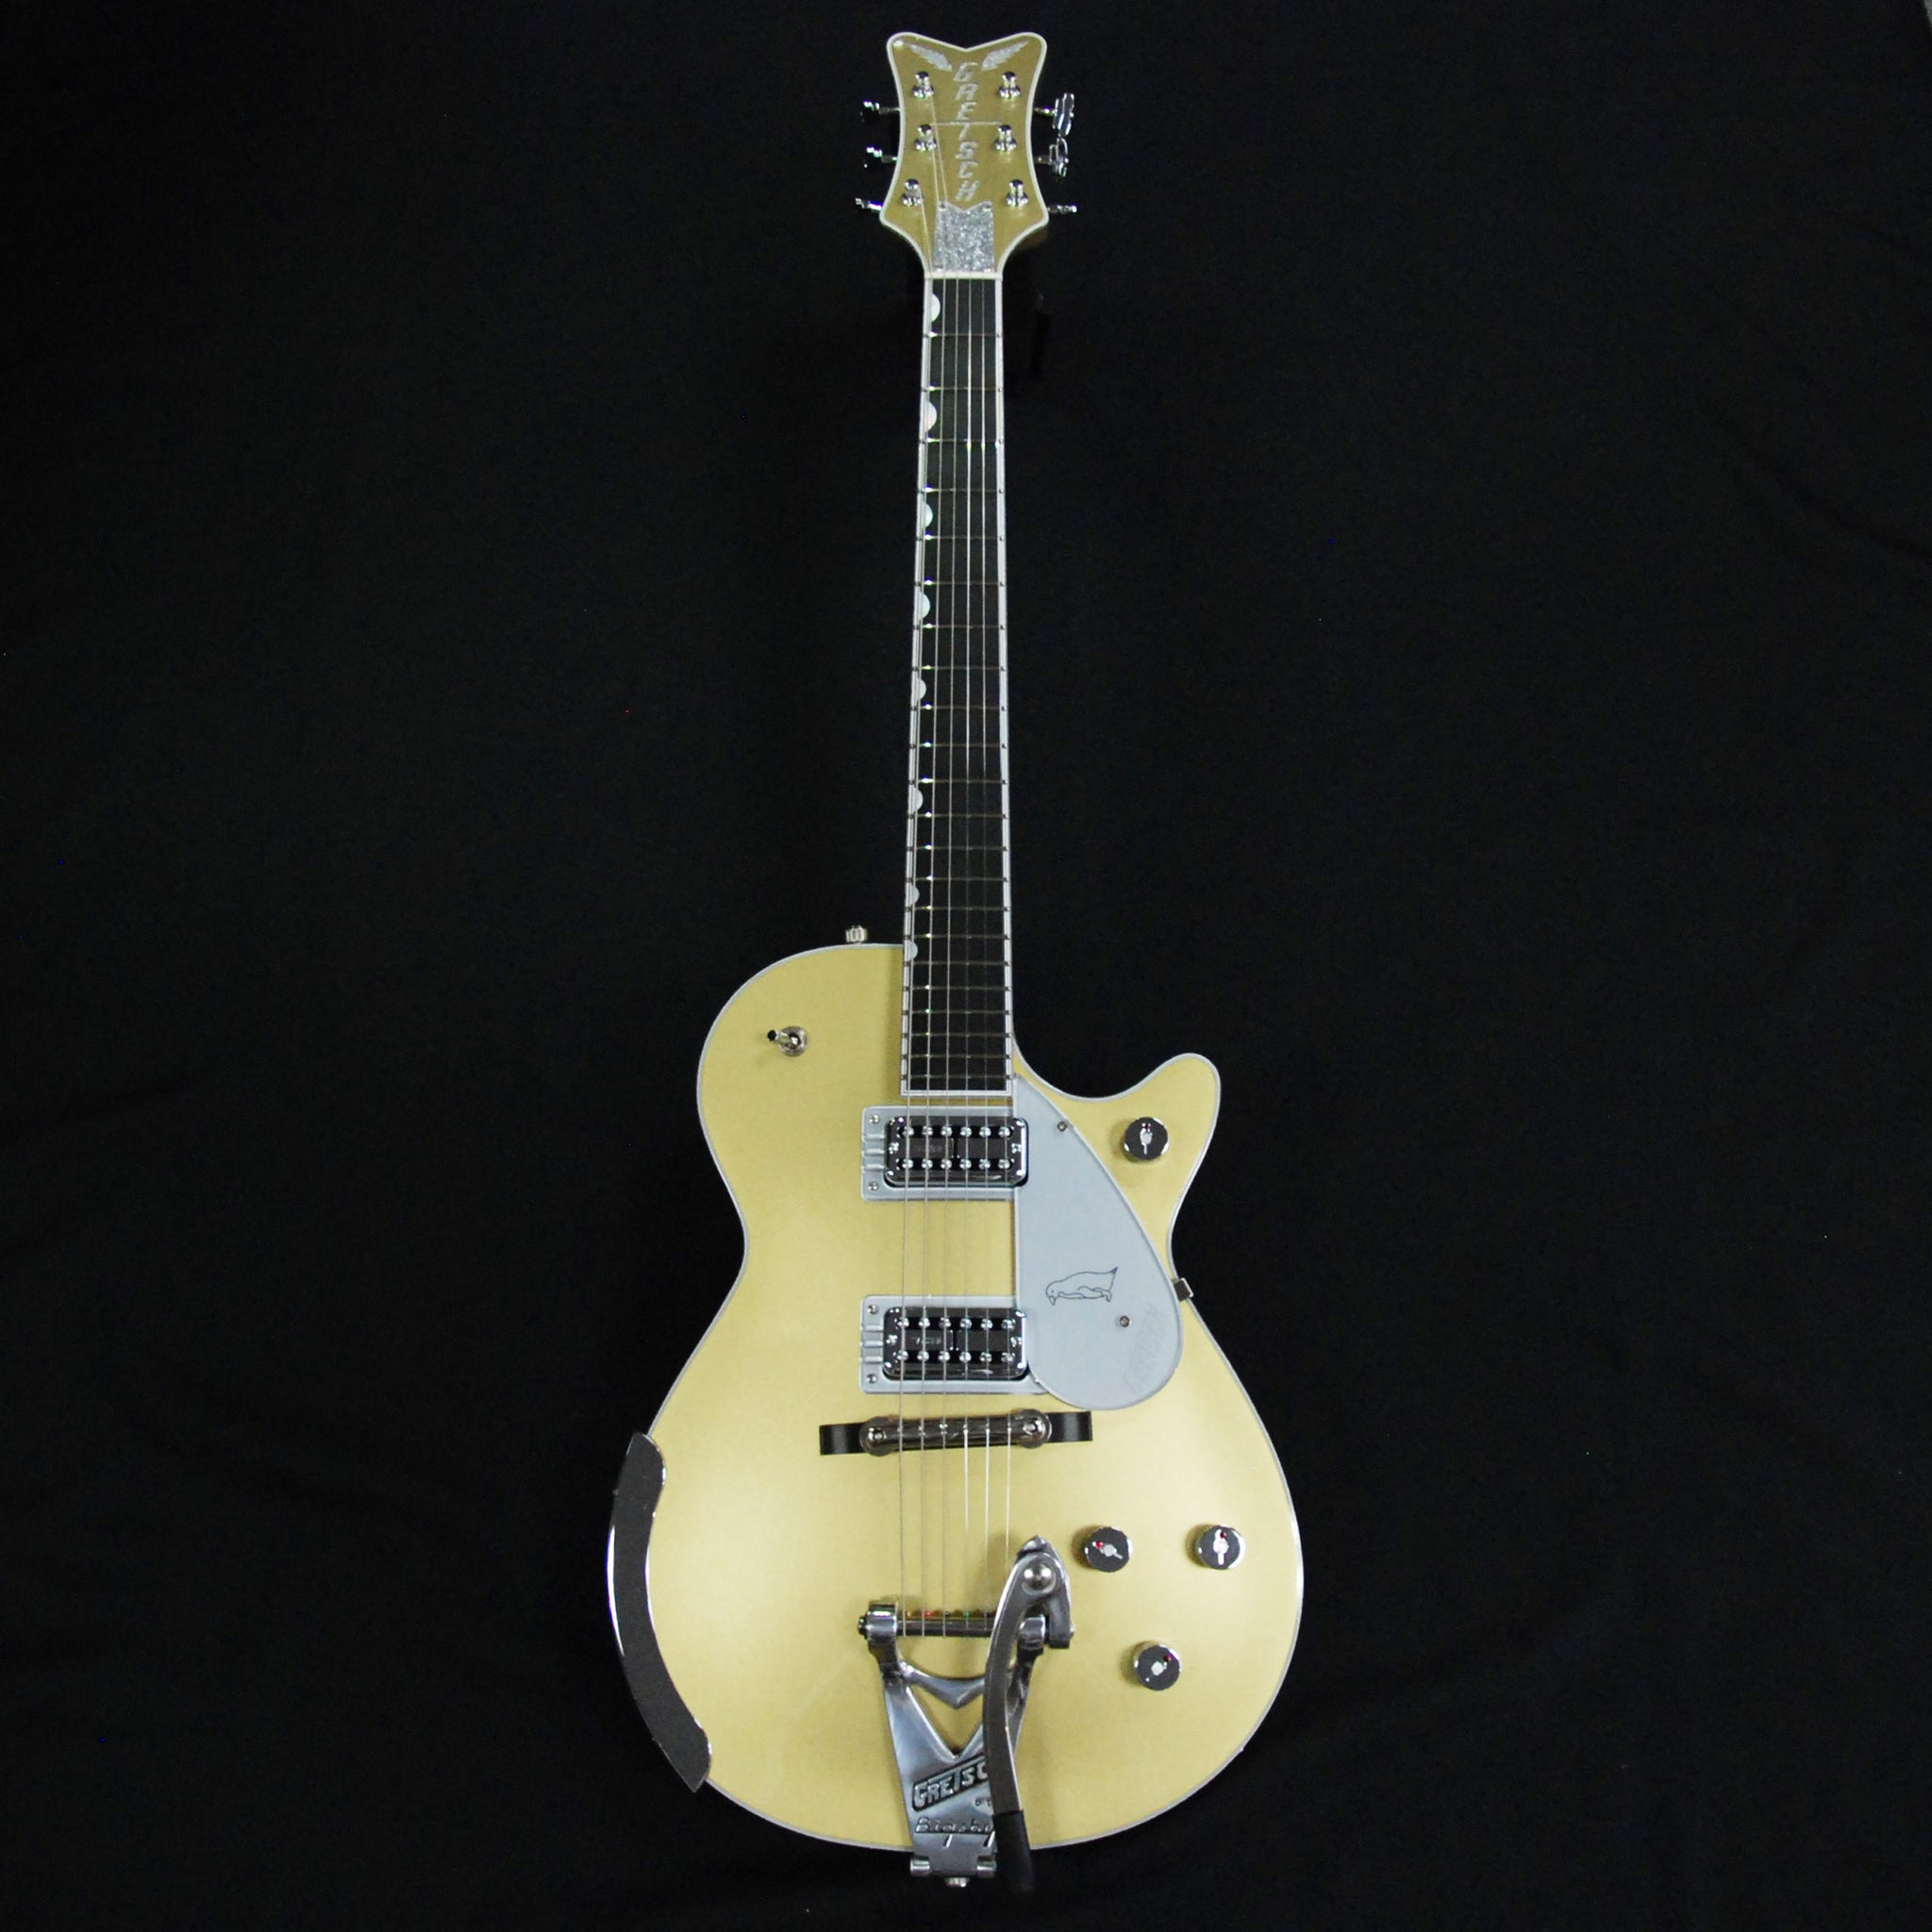 Gretsch G6134T Casino Gold Limited Edition Penguin Guitar [G6134T]